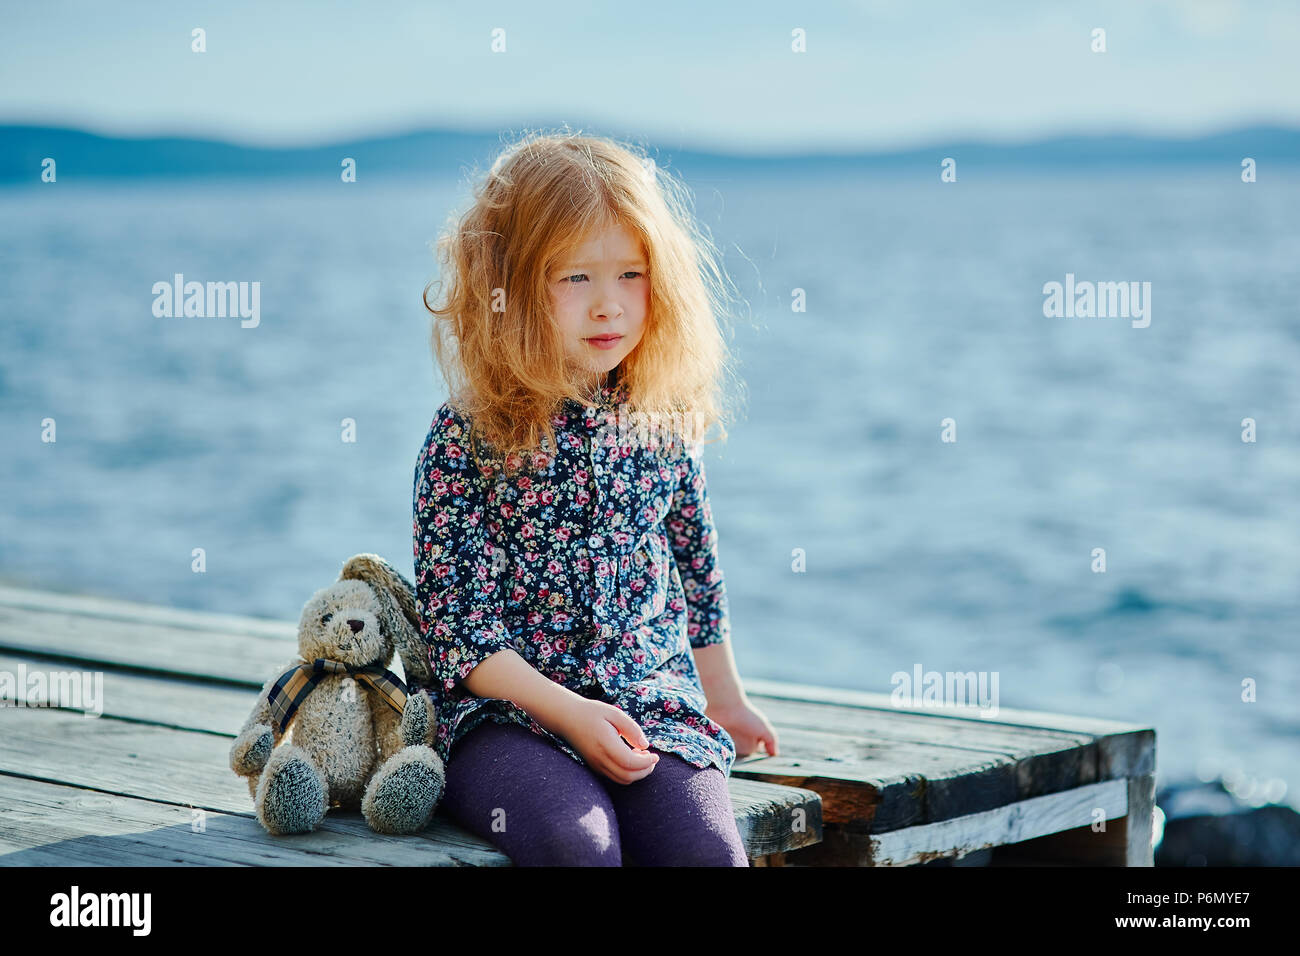 Sad Looking Girl Sitting On The Beach Stock Photos Sad Looking